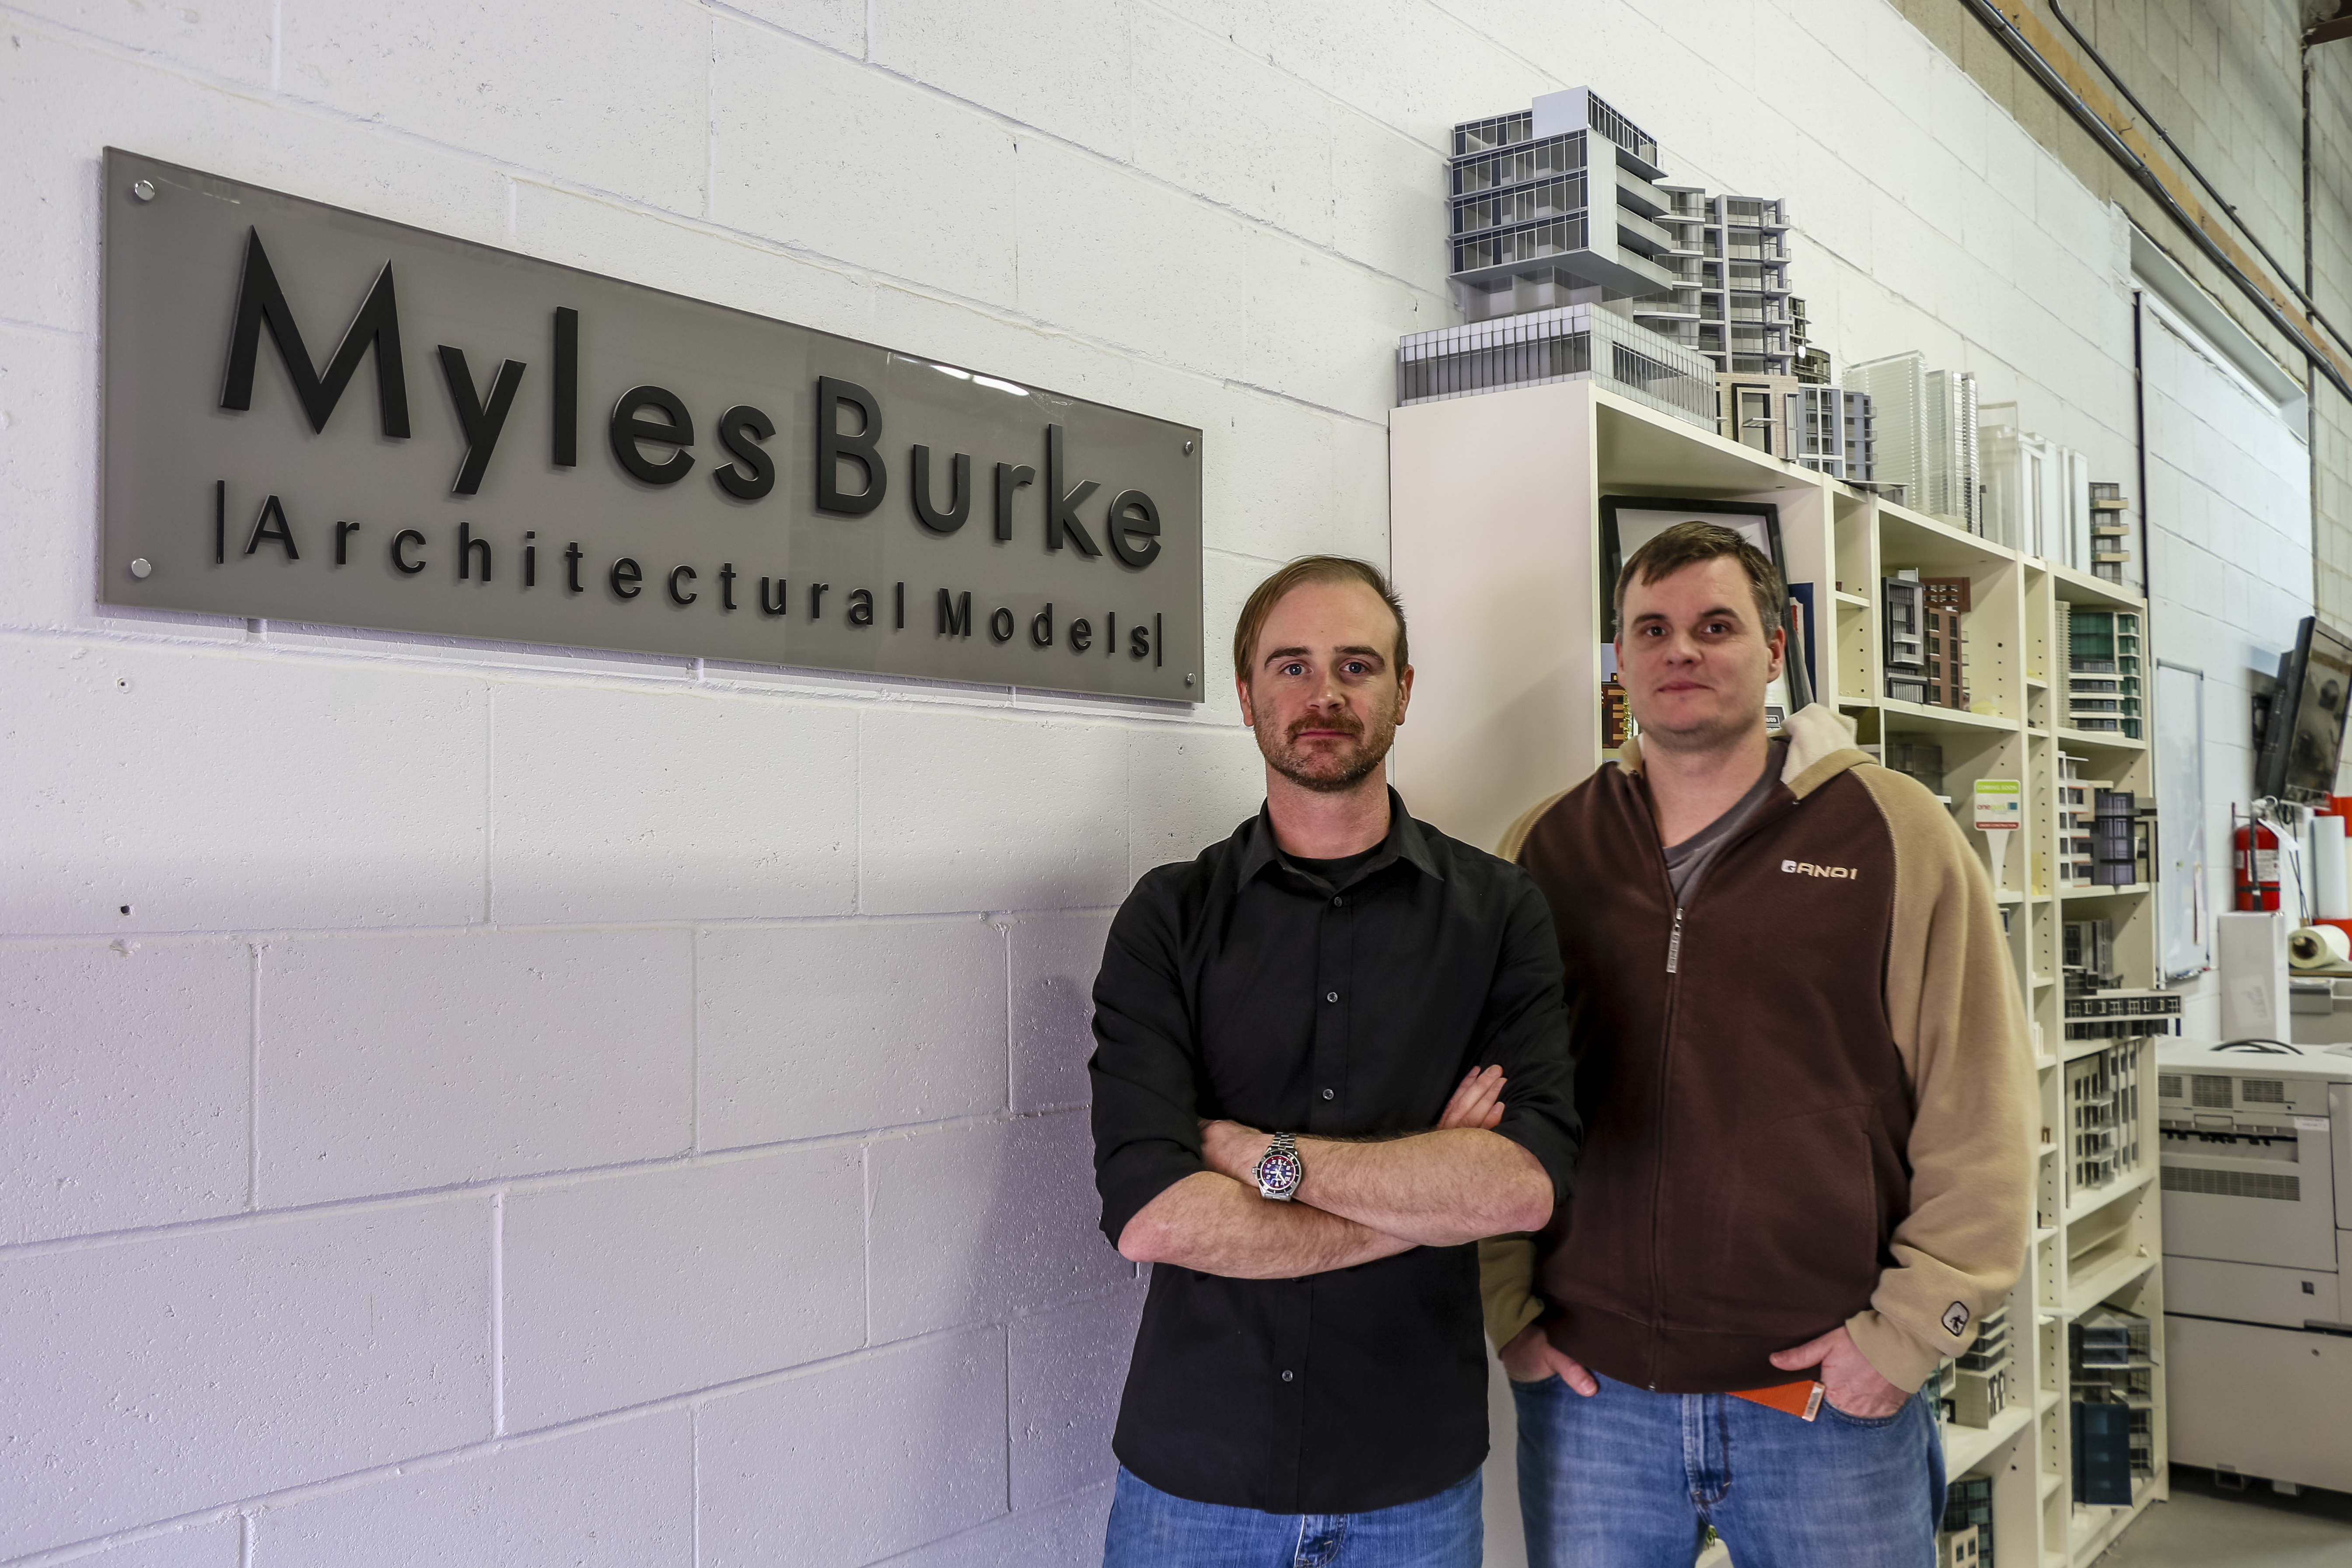 watch a tour through the studio of myles burke architectural models